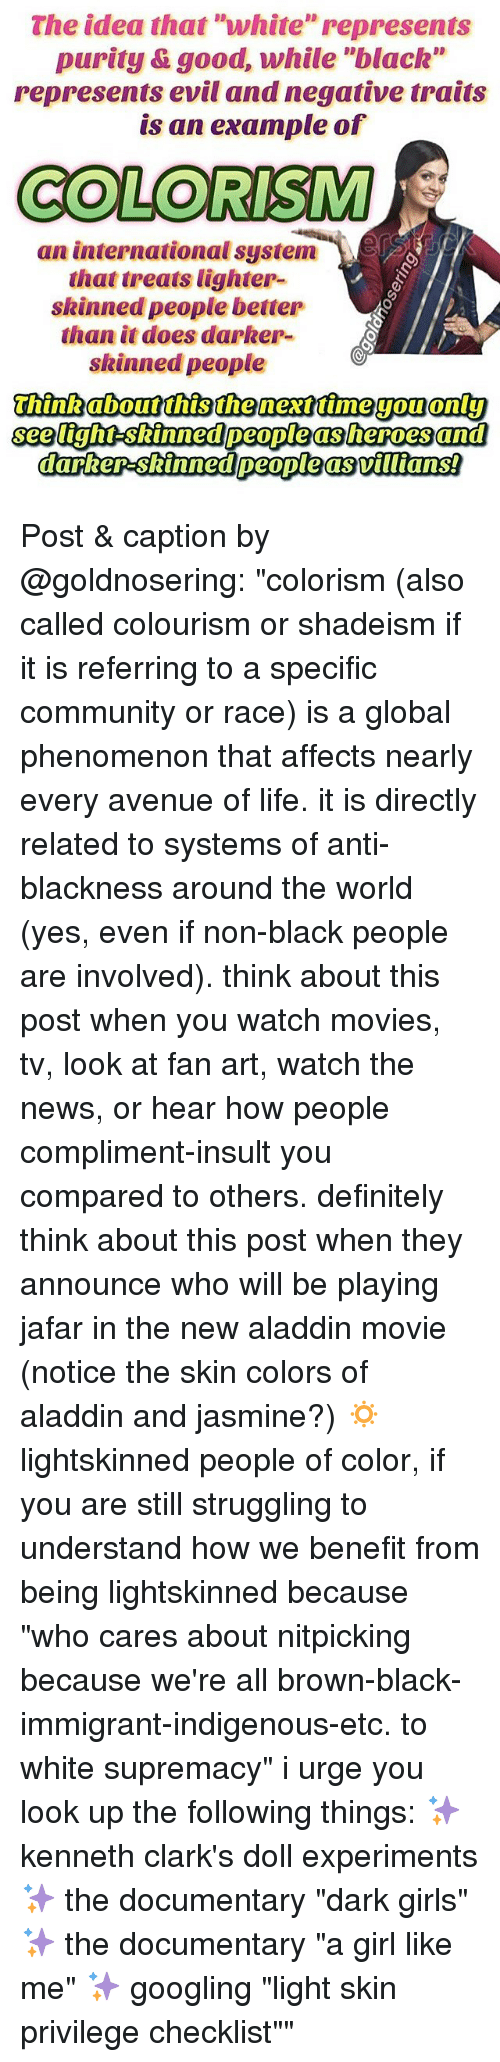 """Aladdin, Community, and Definitely: The idea that """"white"""" represents  purity &good, while """"black""""  represents evil and negative traits  is an example of  COLORISM  an international system-)、ESS  that treats lighter-  skinned people better  than it does darker-  skinned people  see tight-skinned people as heroes and Post & caption by @goldnosering: """"colorism (also called colourism or shadeism if it is referring to a specific community or race) is a global phenomenon that affects nearly every avenue of life. it is directly related to systems of anti-blackness around the world (yes, even if non-black people are involved). think about this post when you watch movies, tv, look at fan art, watch the news, or hear how people compliment-insult you compared to others. definitely think about this post when they announce who will be playing jafar in the new aladdin movie (notice the skin colors of aladdin and jasmine?) 🔅 lightskinned people of color, if you are still struggling to understand how we benefit from being lightskinned because """"who cares about nitpicking because we're all brown-black-immigrant-indigenous-etc. to white supremacy"""" i urge you look up the following things: ✨ kenneth clark's doll experiments ✨ the documentary """"dark girls"""" ✨ the documentary """"a girl like me"""" ✨ googling """"light skin privilege checklist"""""""""""